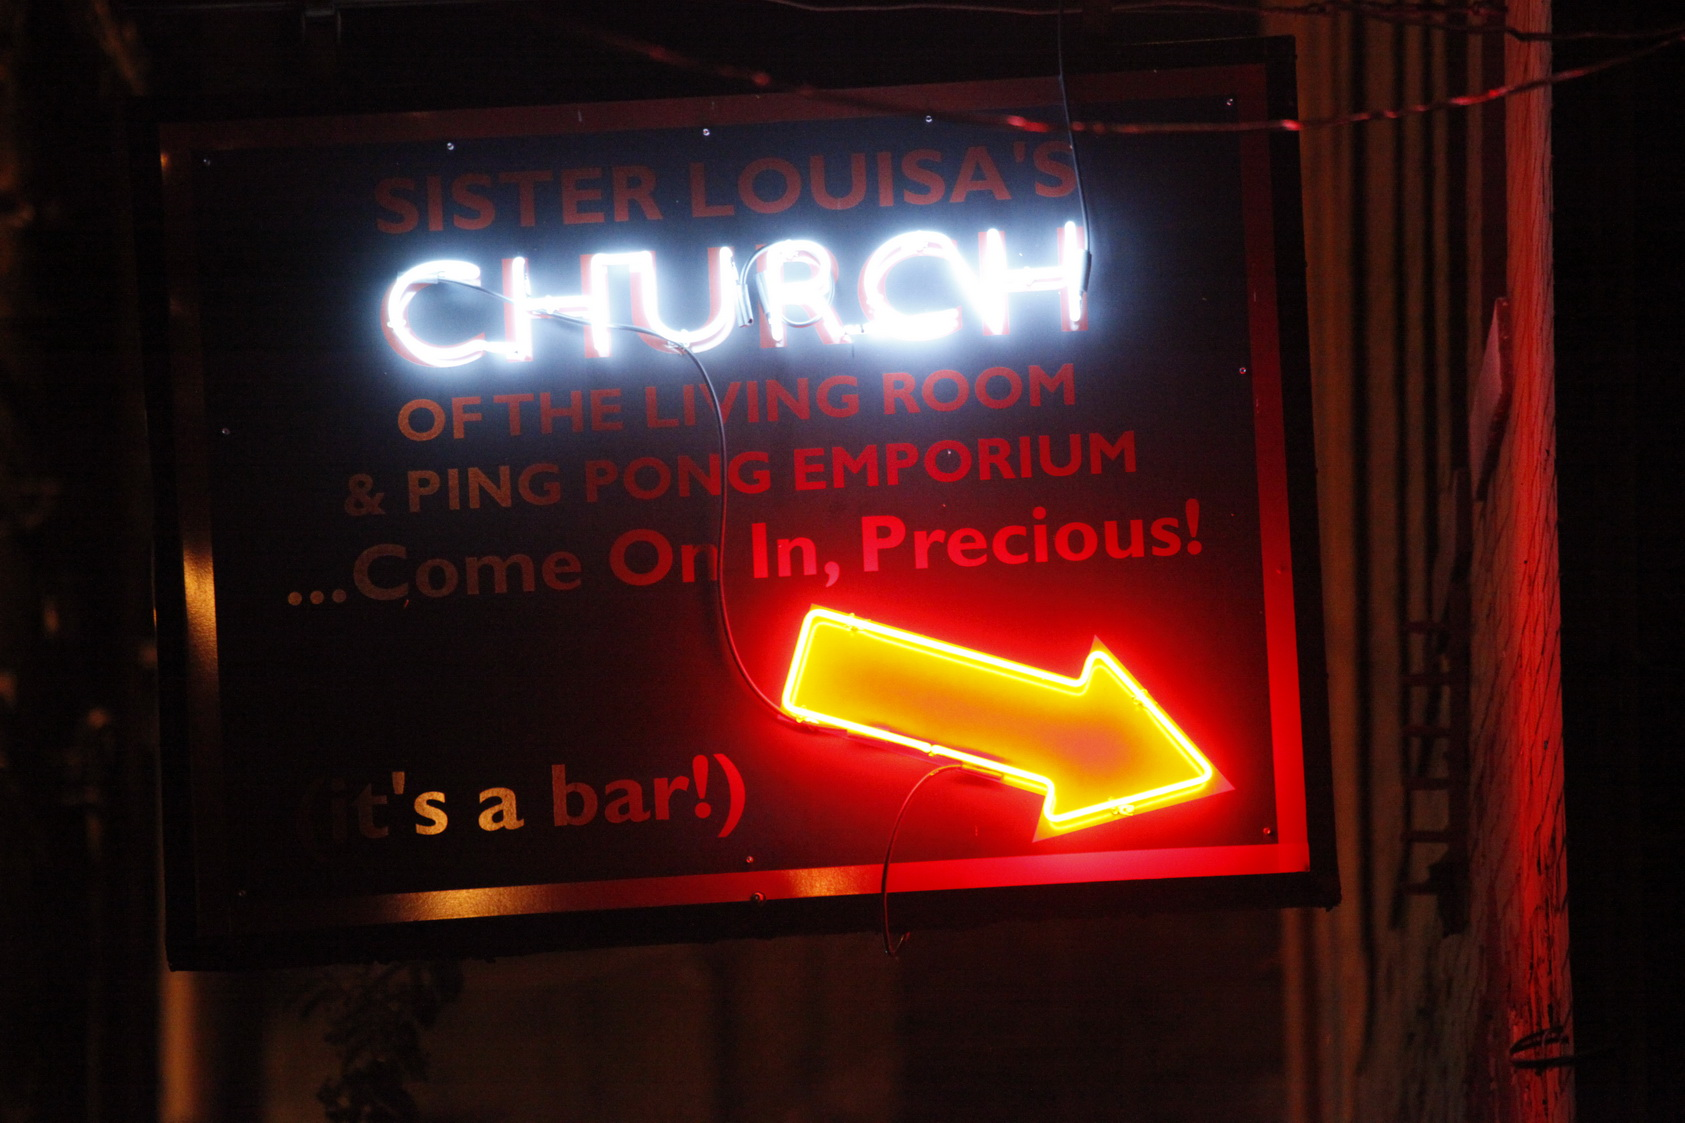 Sister Louisas Church Of The Living Room And Ping Pong Emporium - The living room church